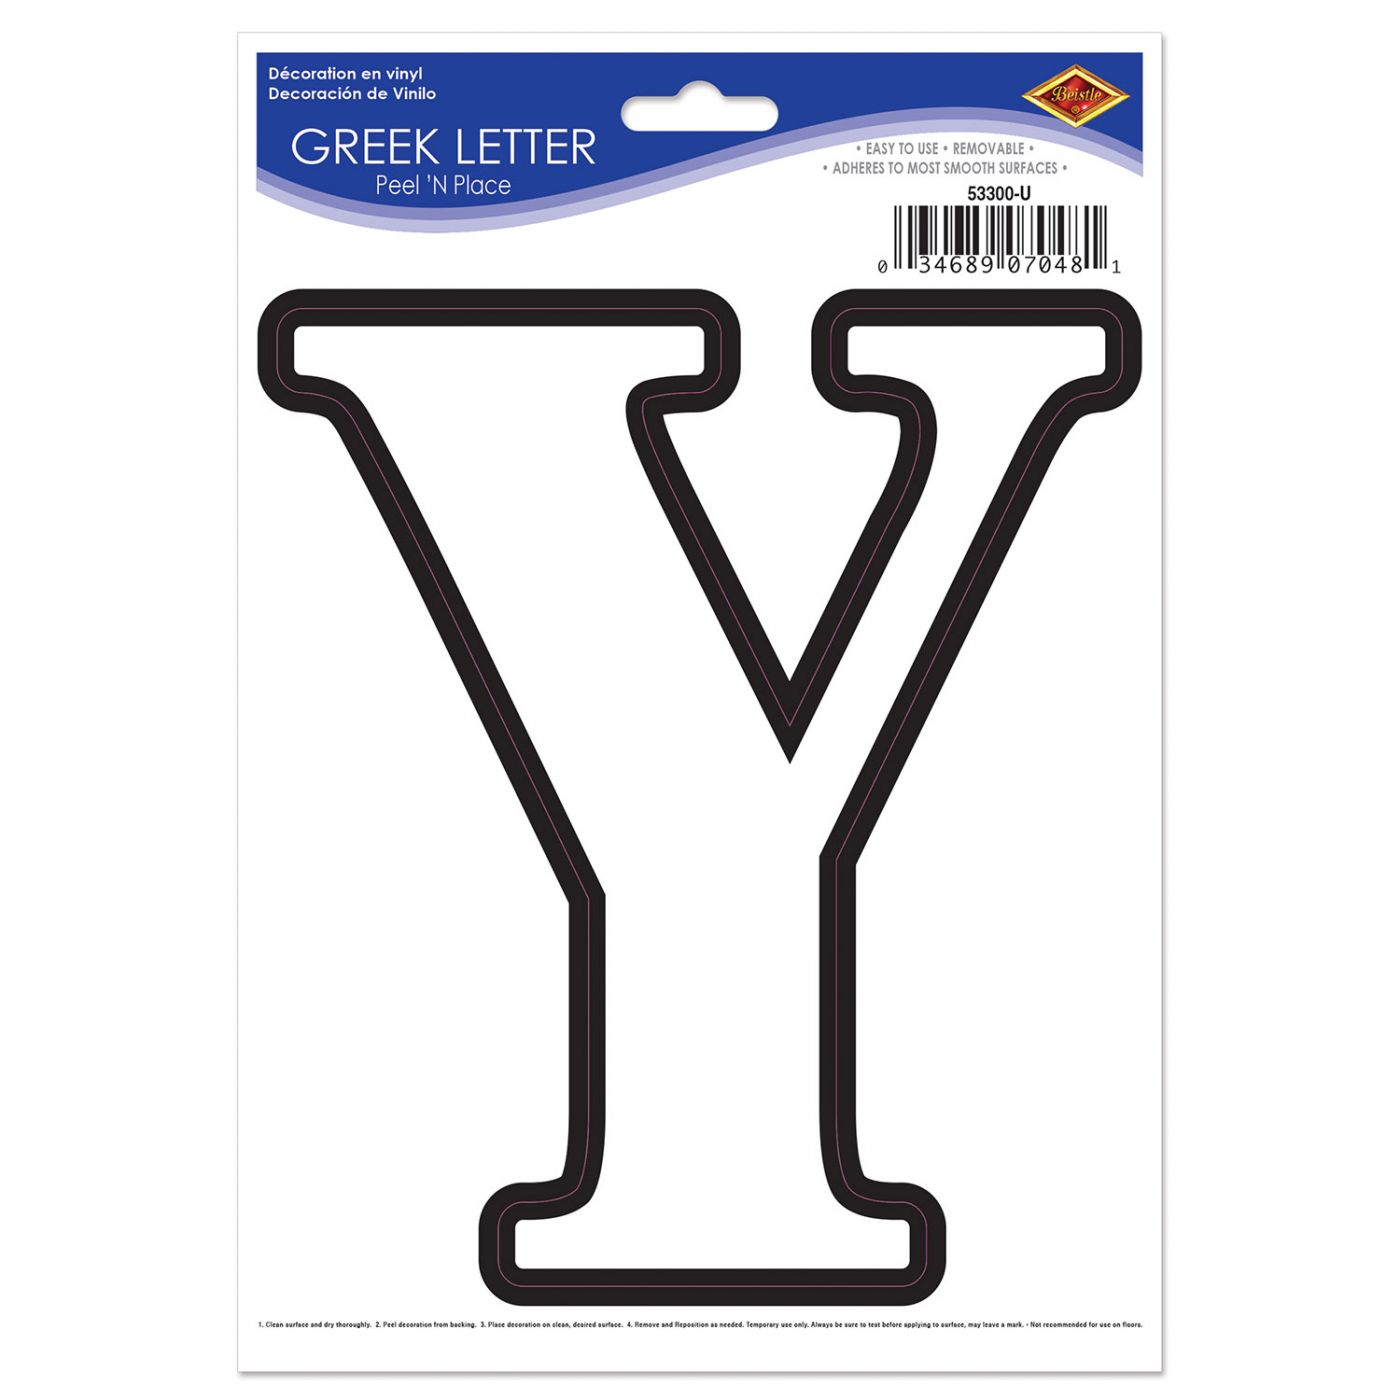 Greek Letter Peel 'N Place image